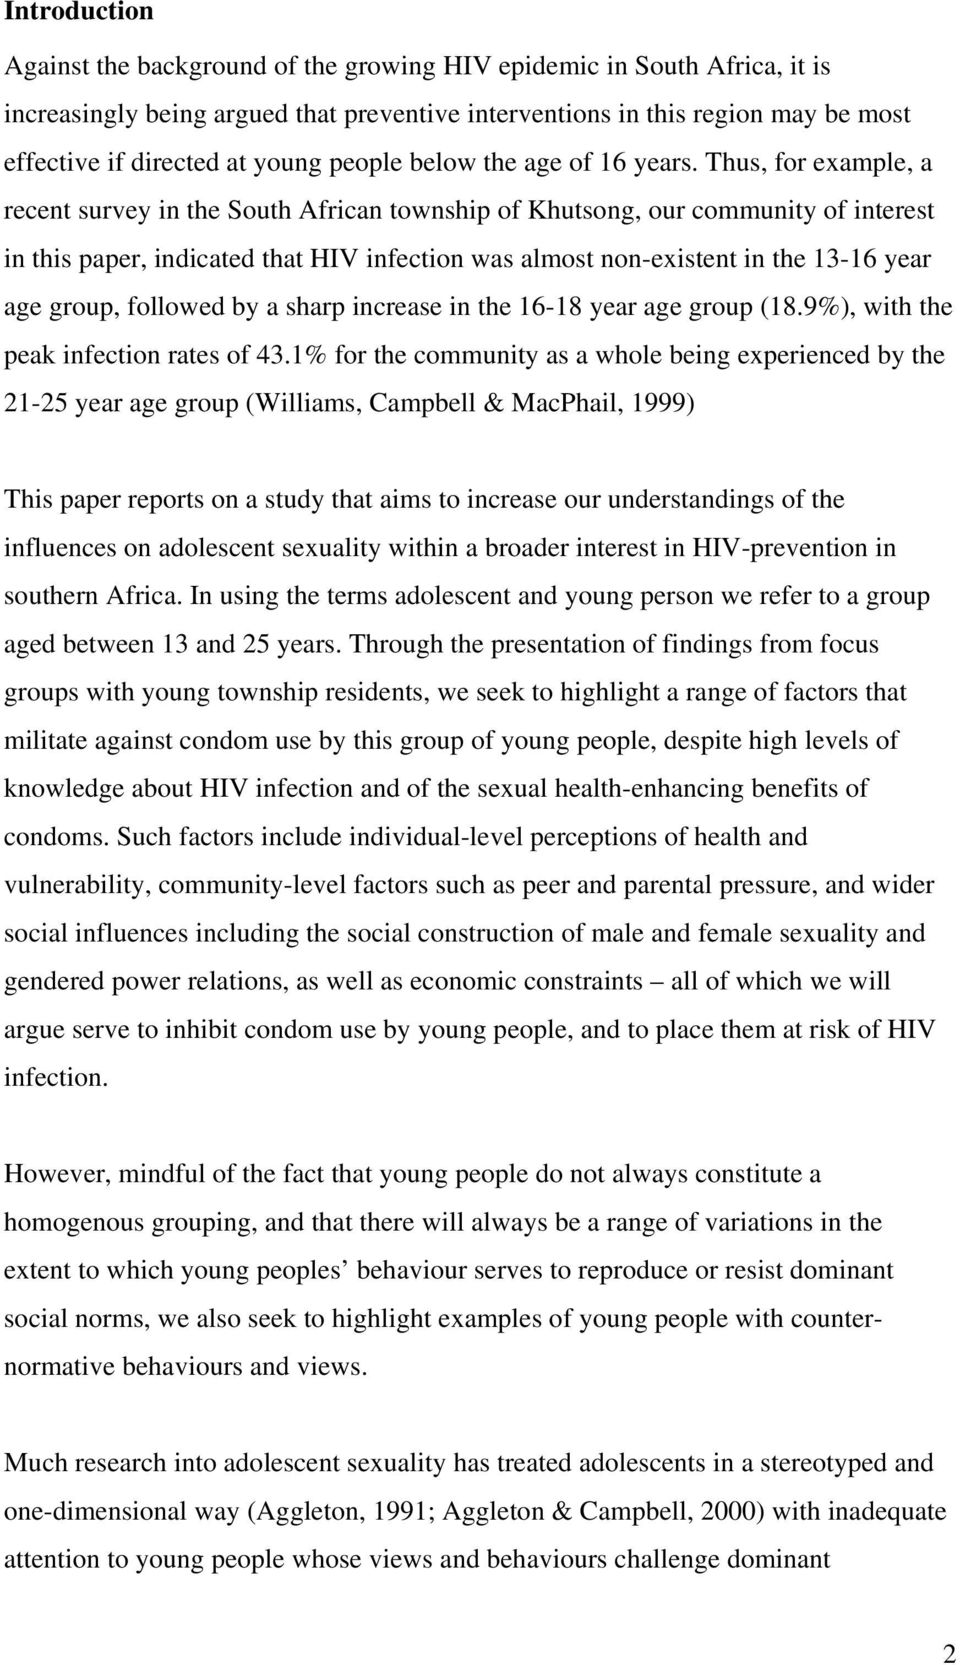 Thus, for example, a recent survey in the South African township of Khutsong, our community of interest in this paper, indicated that HIV infection was almost non-existent in the 13-16 year age